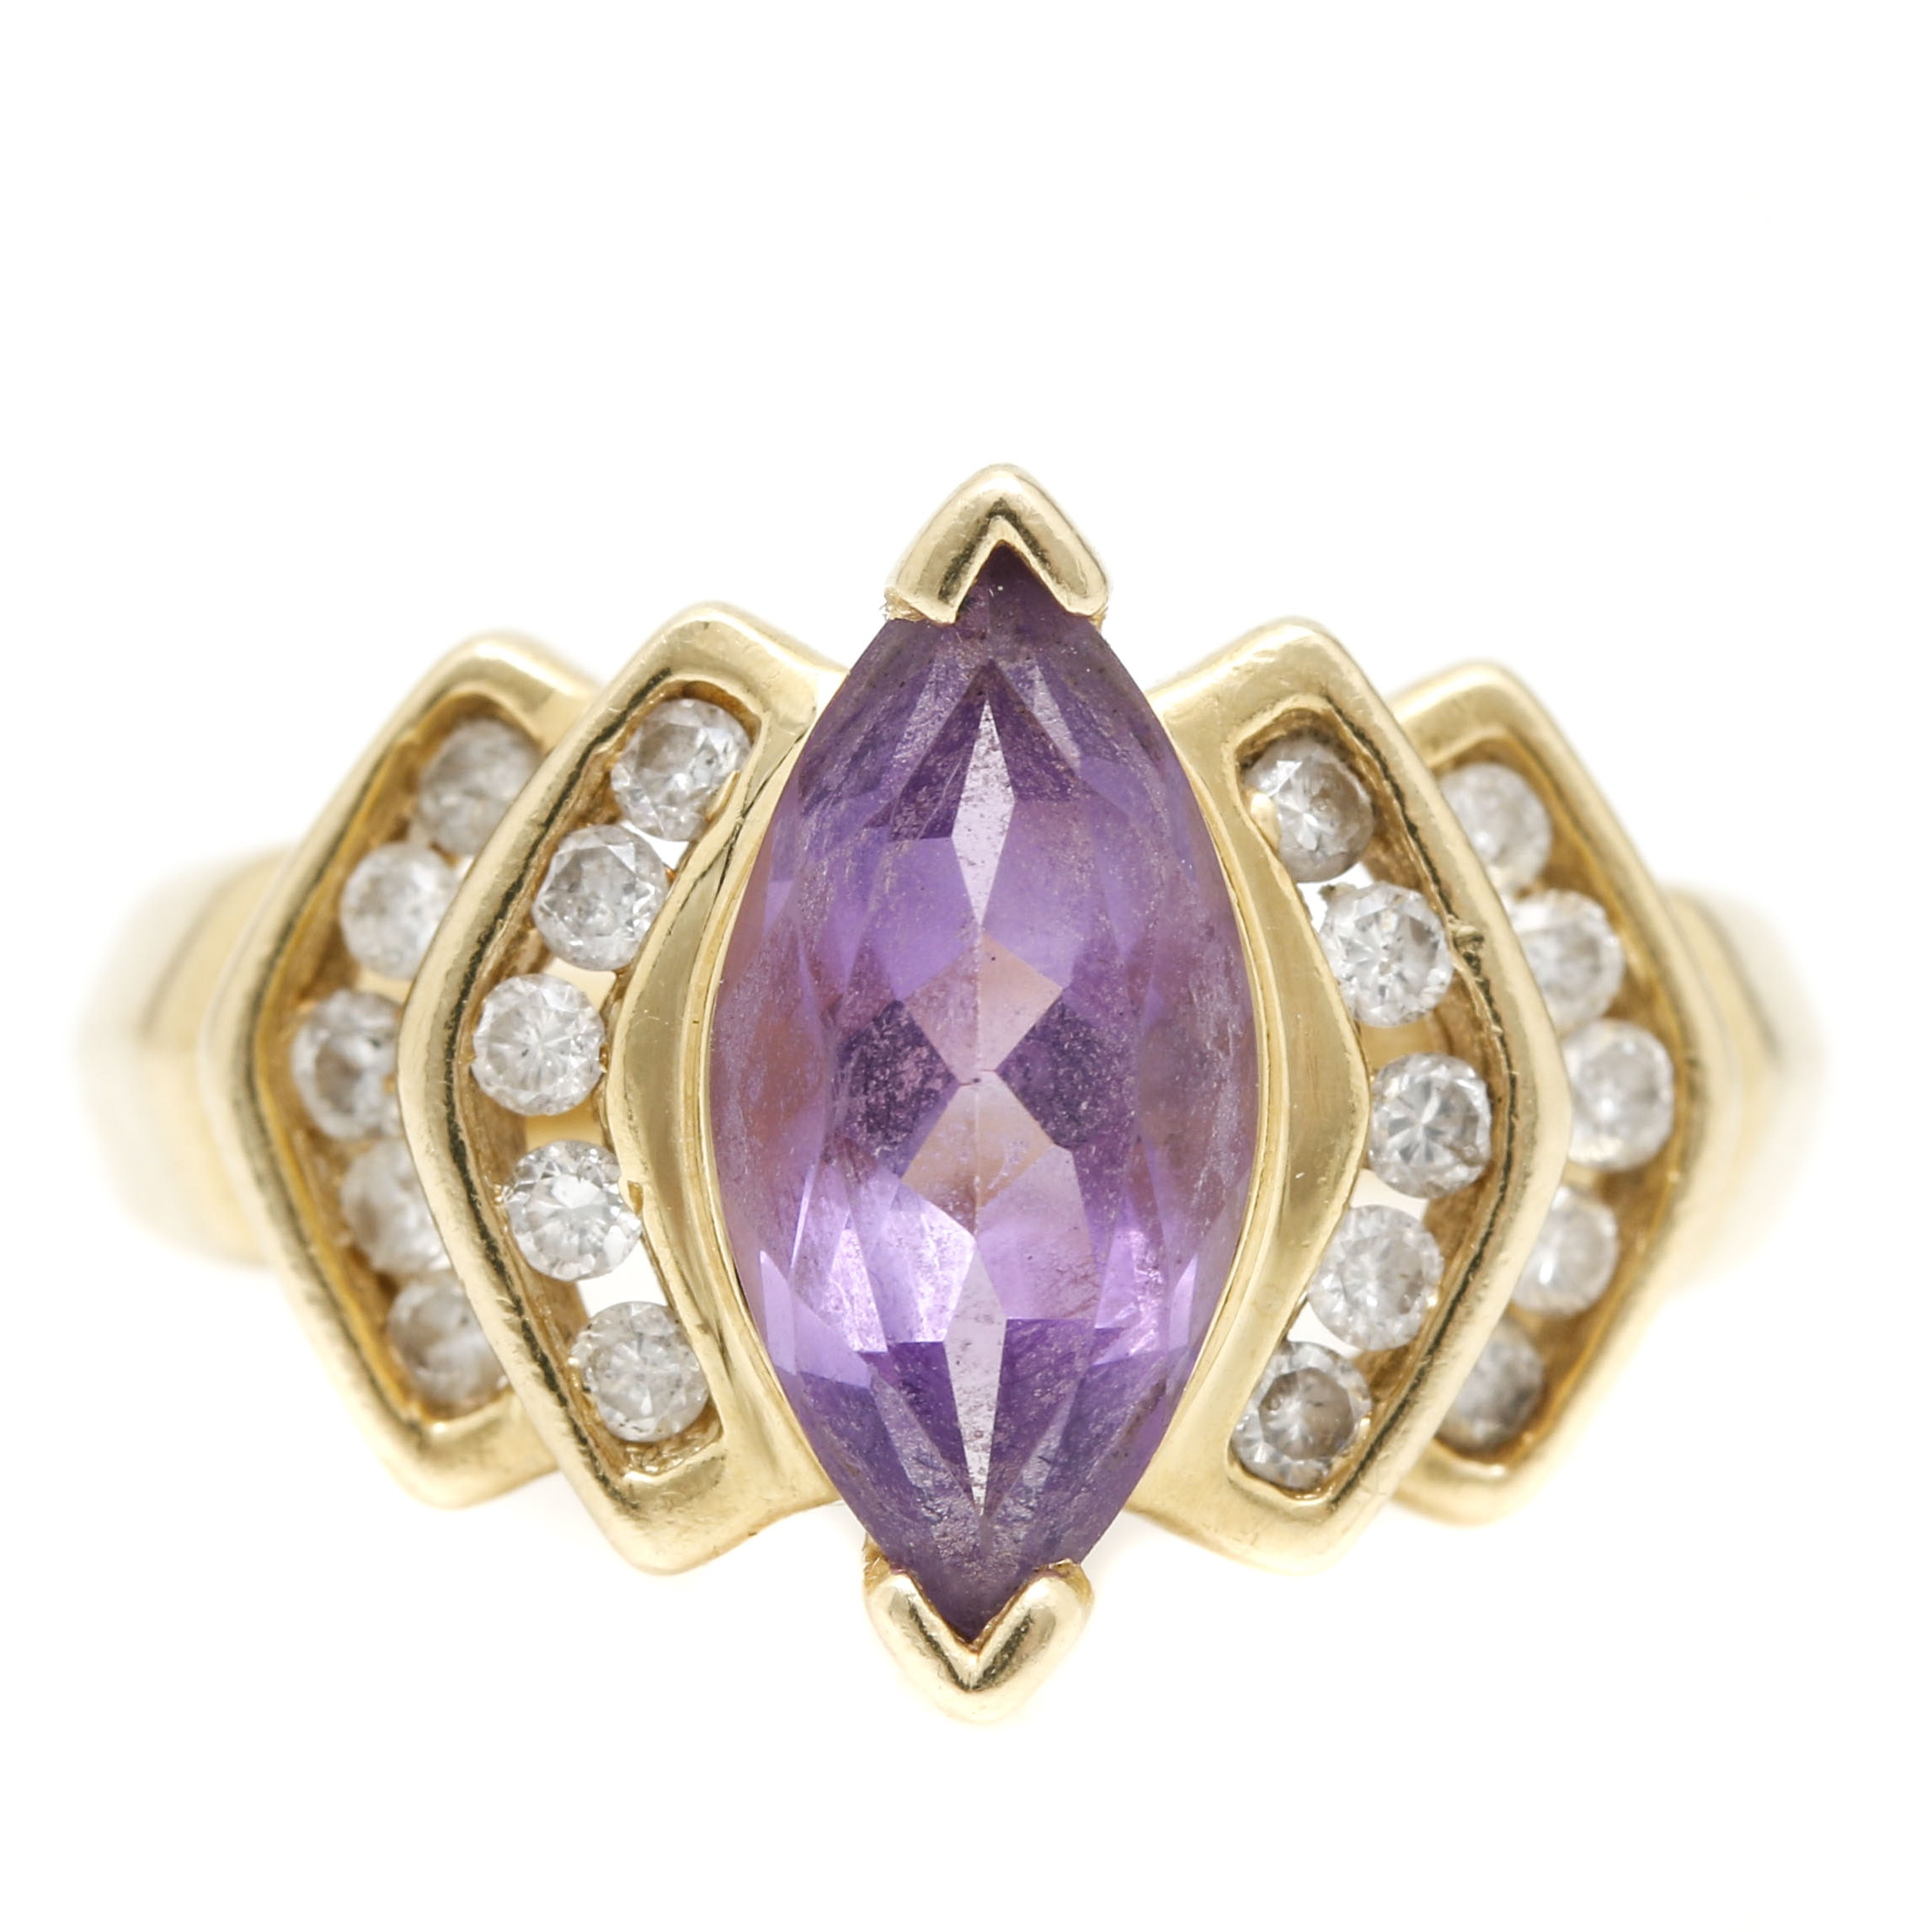 14K Yellow Gold Diamond and 1.42 CT Amethyst Ring